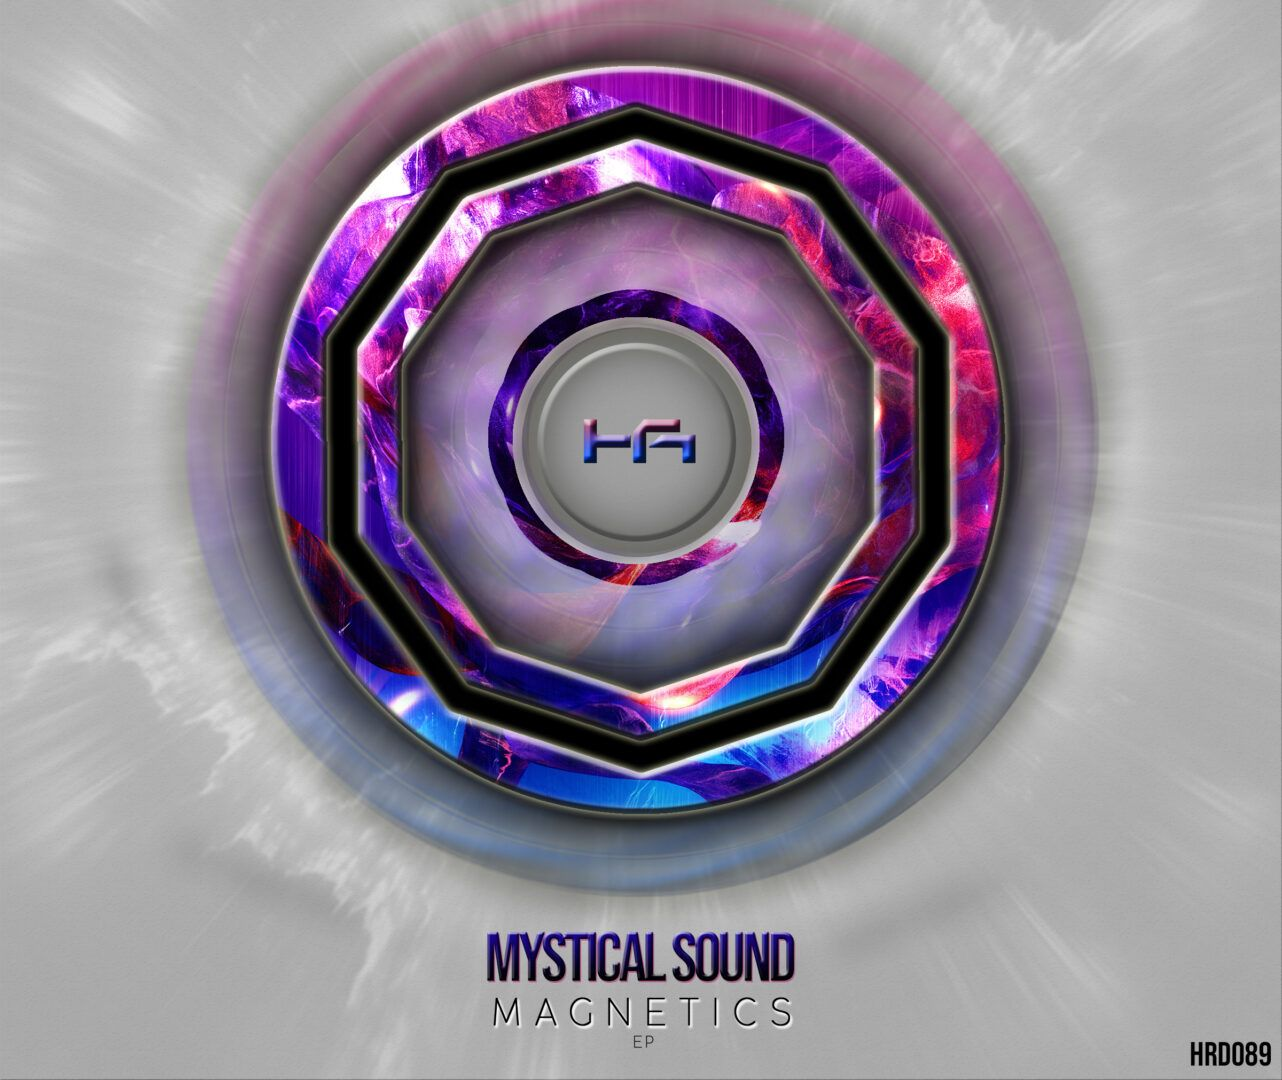 MYSTICAL SOUND MAGNETICS